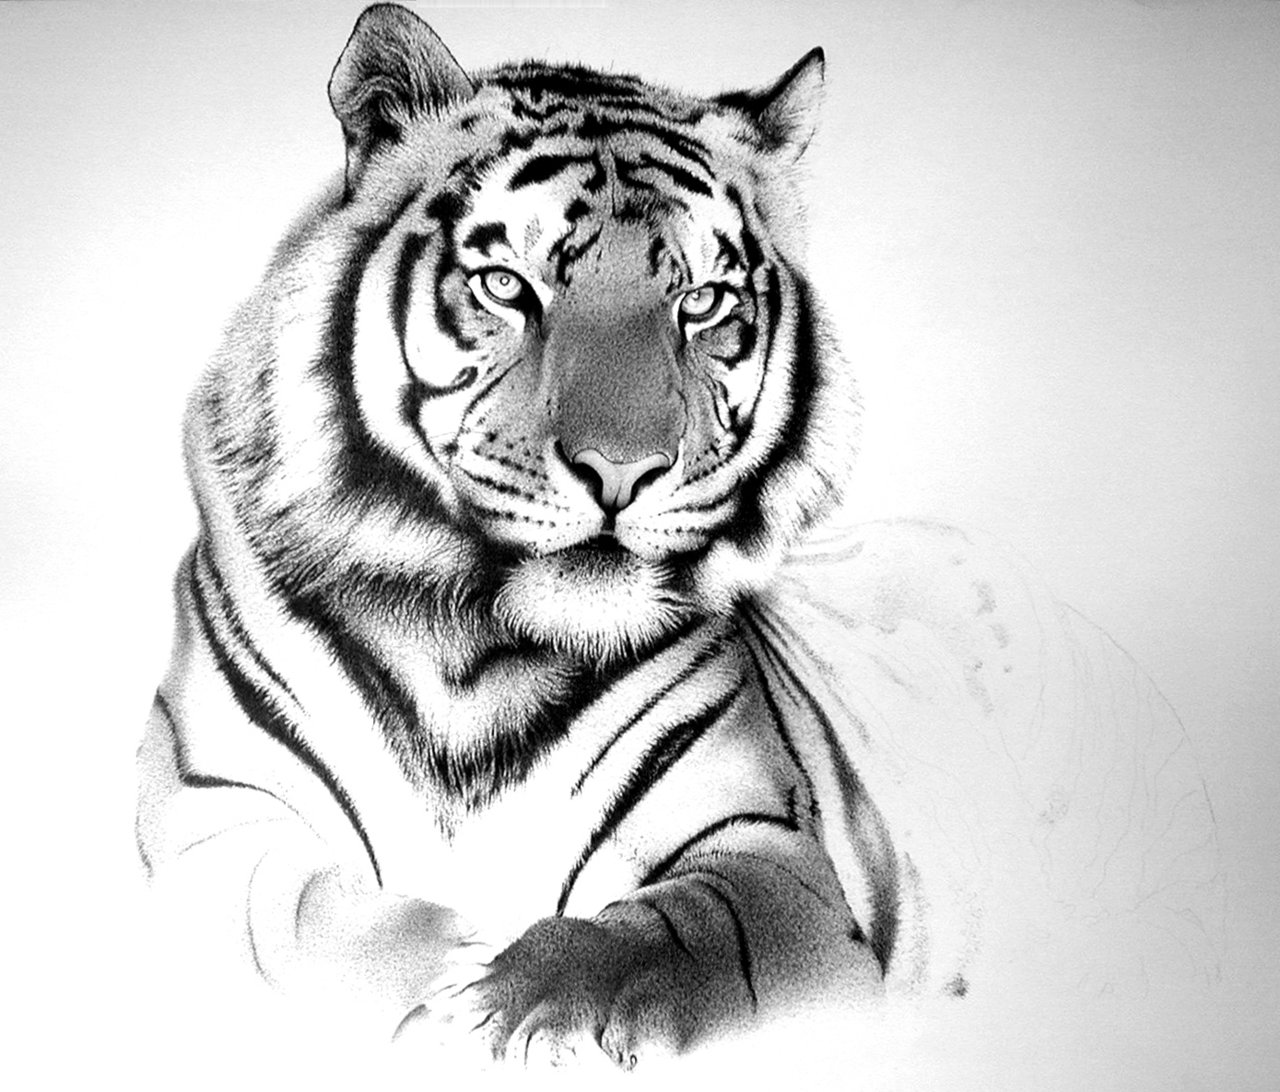 Drawn tigres 2014 artistic pictures tiger traditional